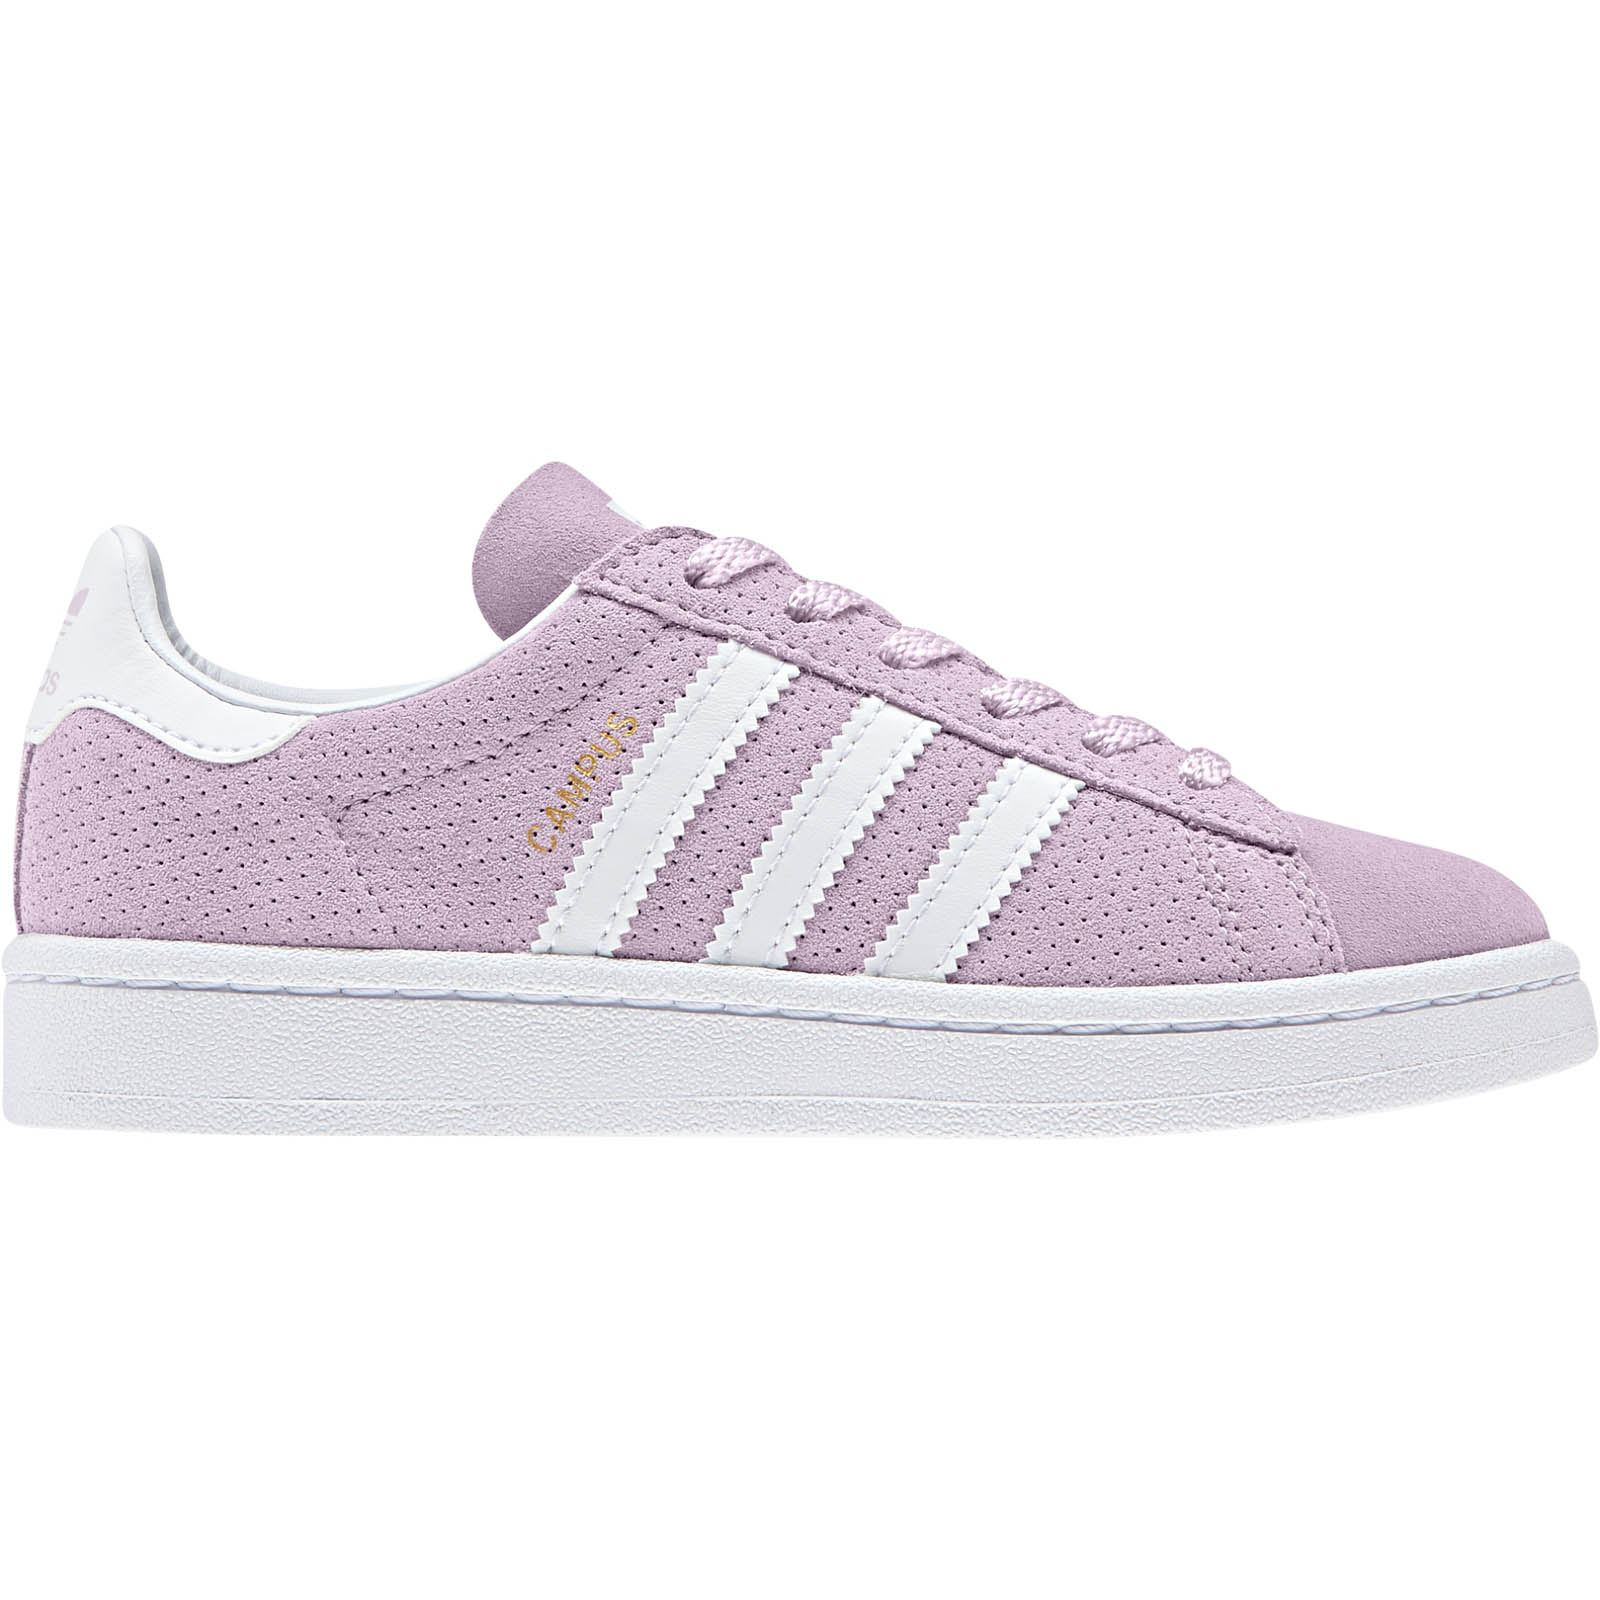 ADIDAS ORIGINALS Campus C - Sneakers en cuir - lilas